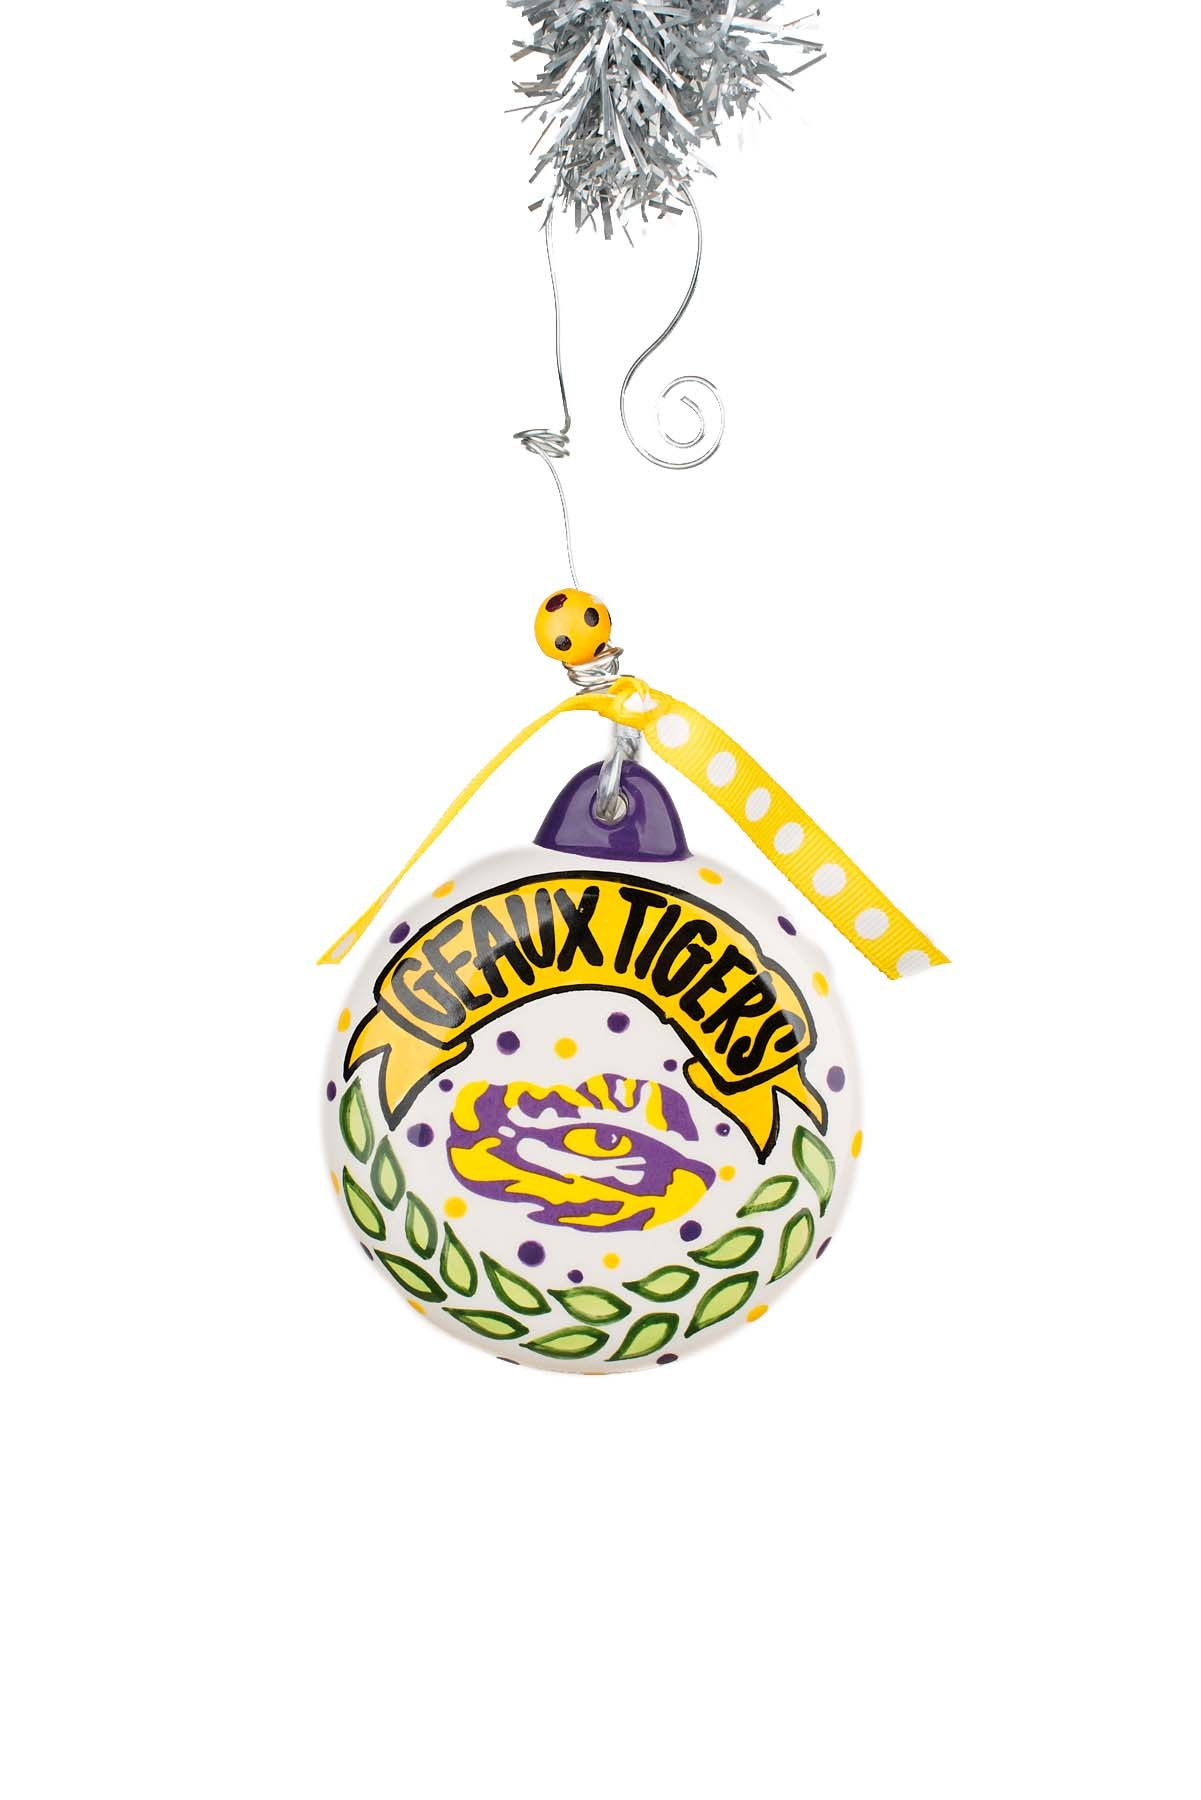 Glory Haus Lsu Puff Ornament, Multicolor by Glory Haus